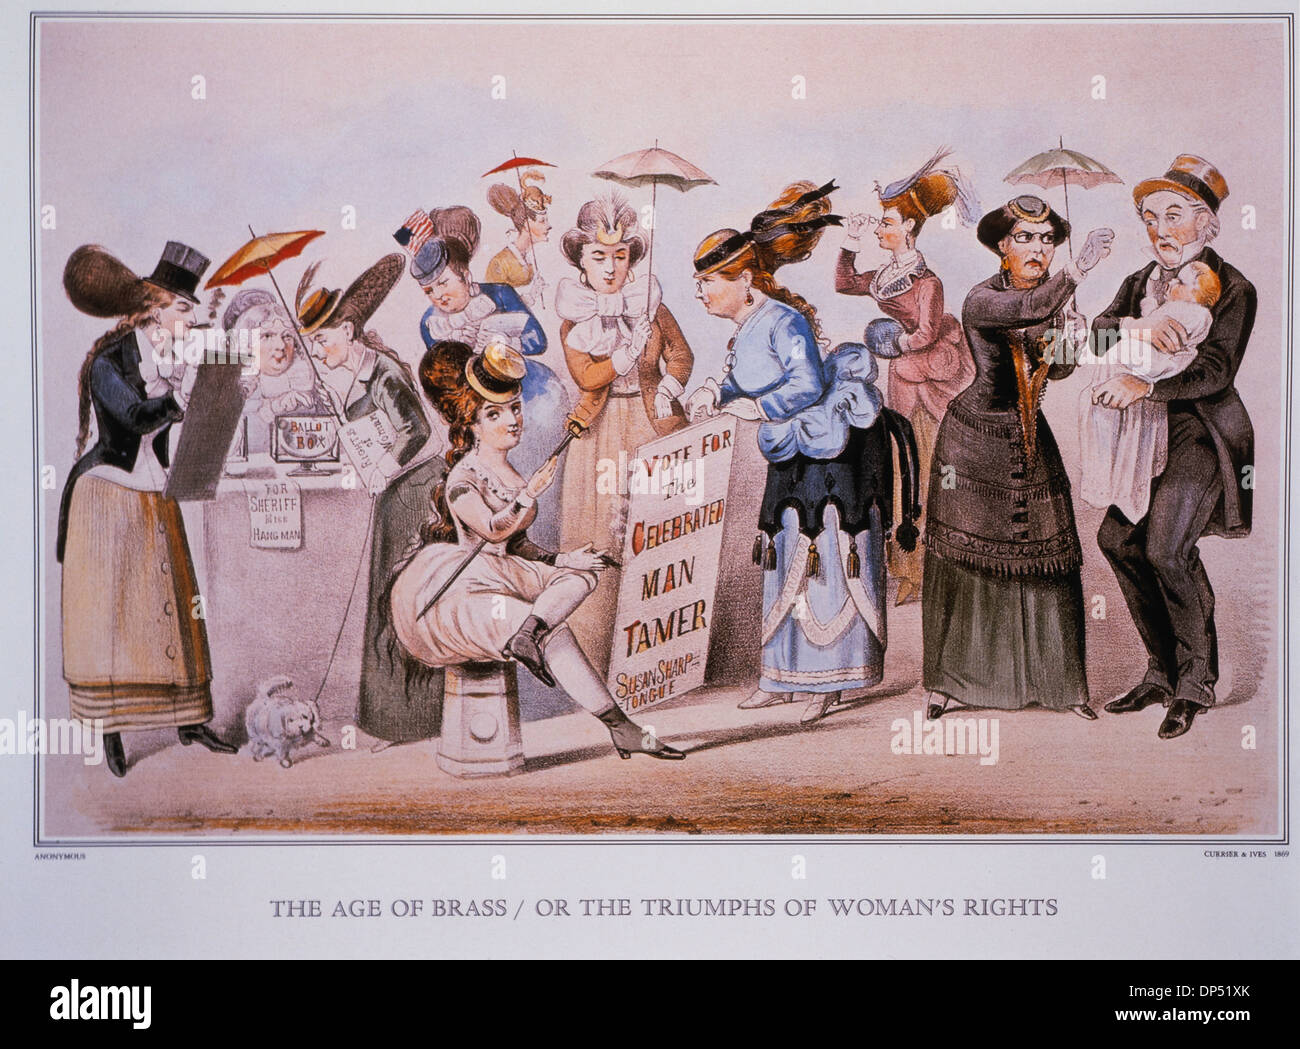 The Age of Brass or The Triumphs of Woman's Rights, Lithograph, Currier & Ives, 1869 - Stock Image